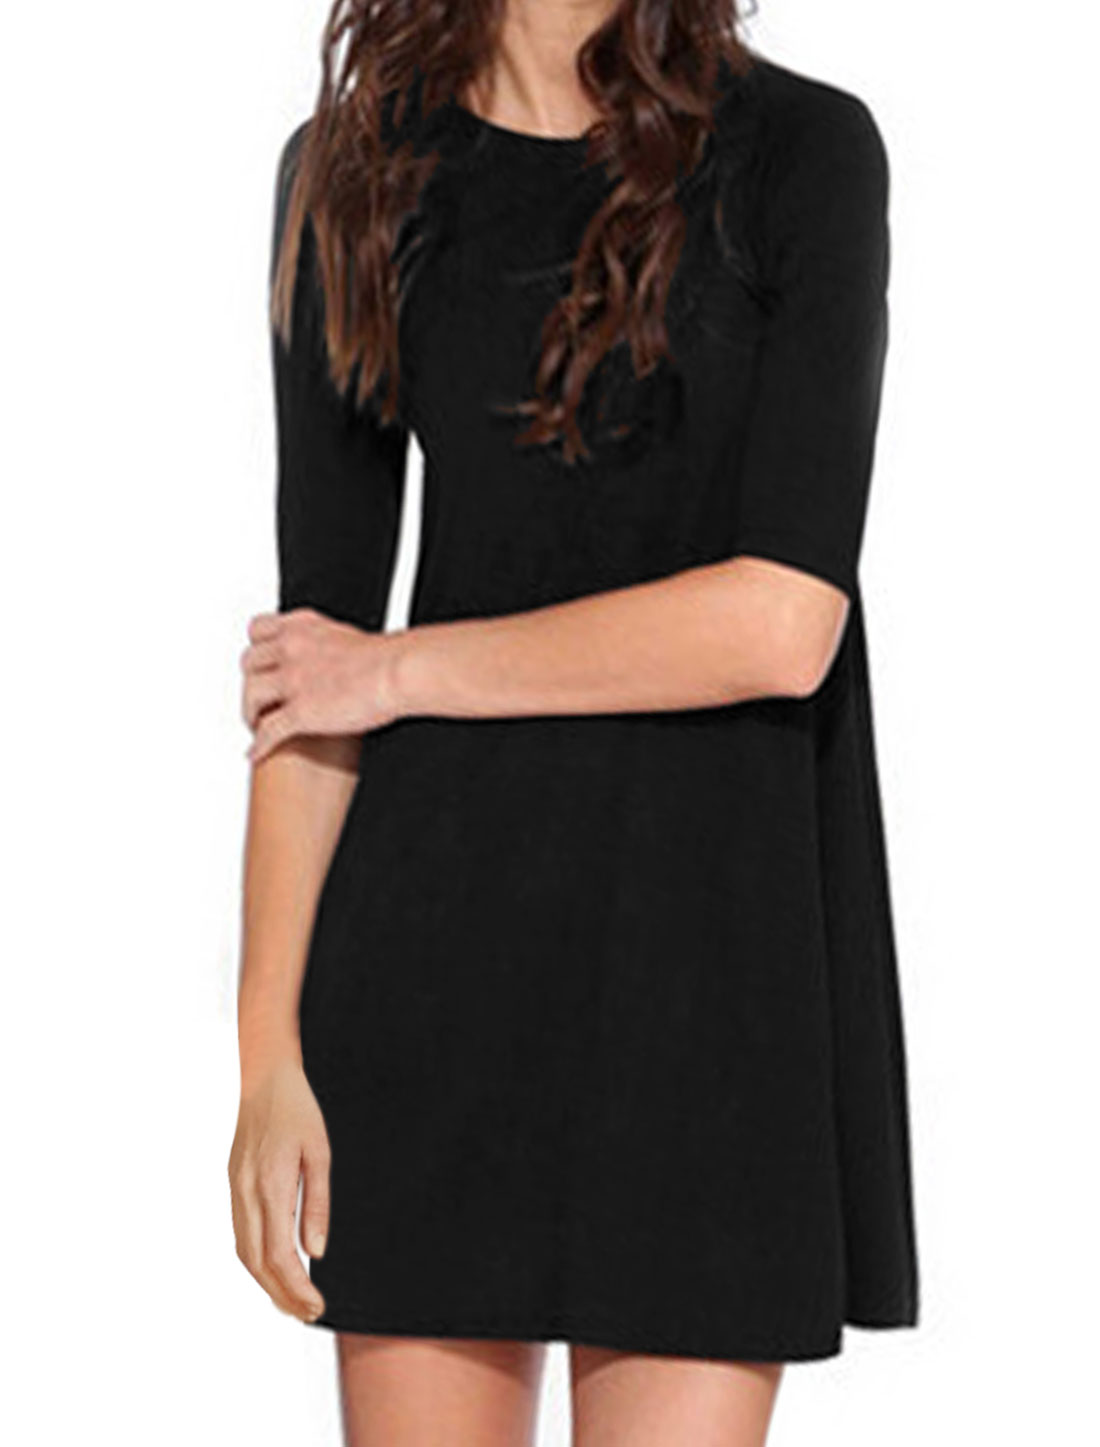 Women Crew Neck 1/2 Raglan Sleeves Tunic Dress Black S